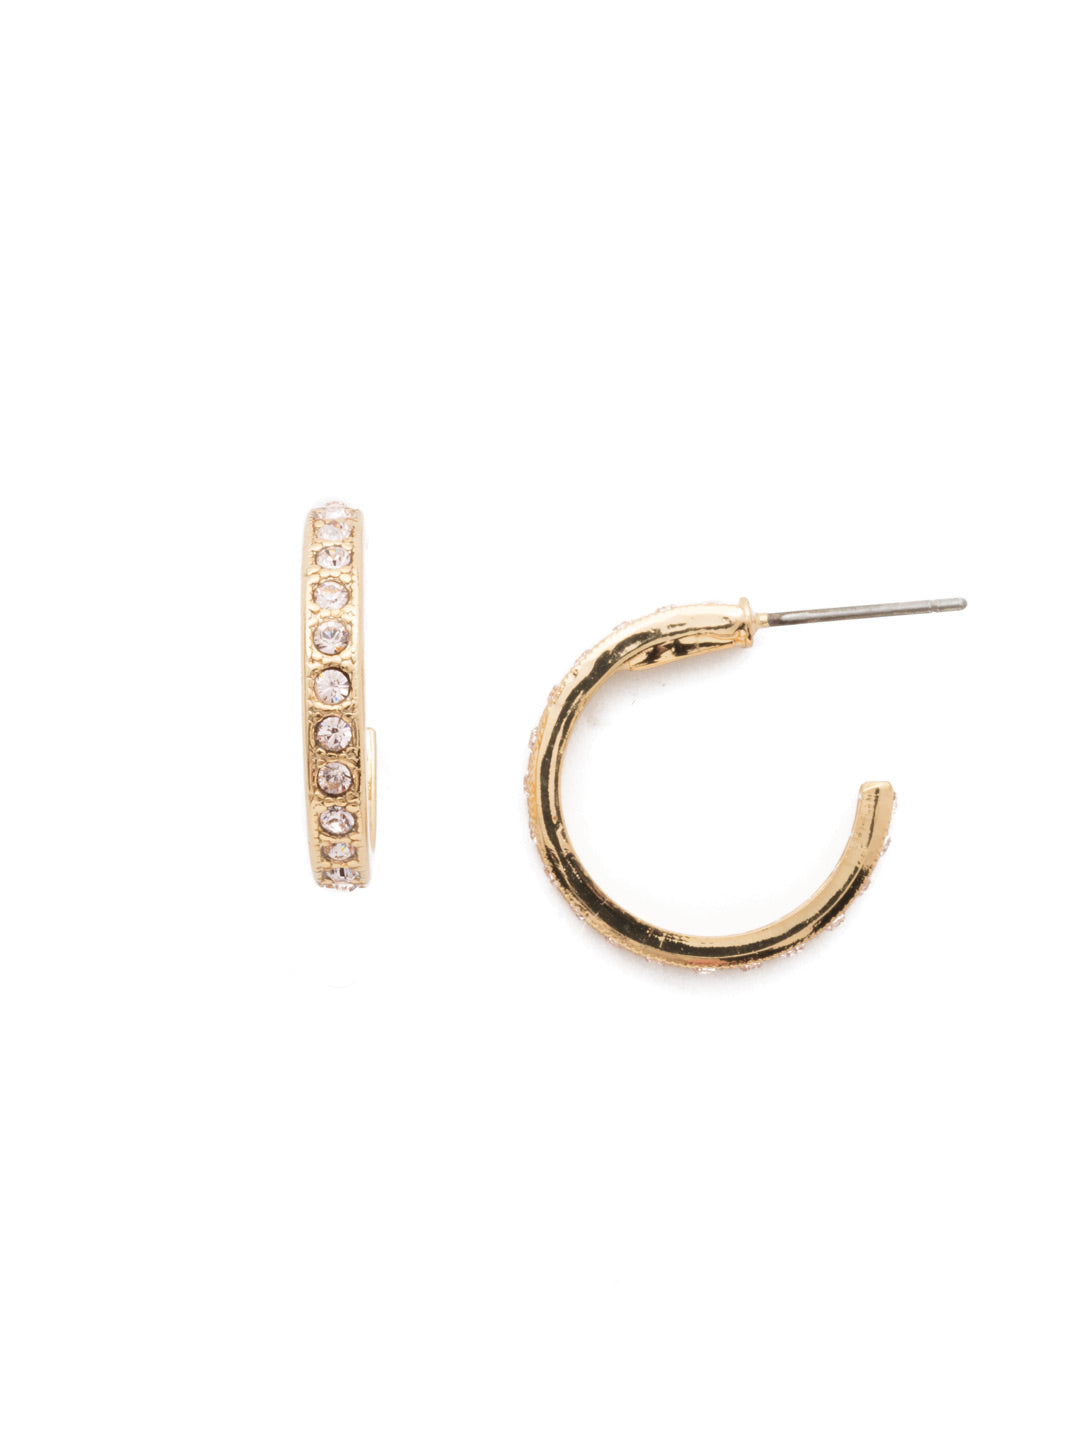 Silva Hoop Earrings - ECR110BGSRC